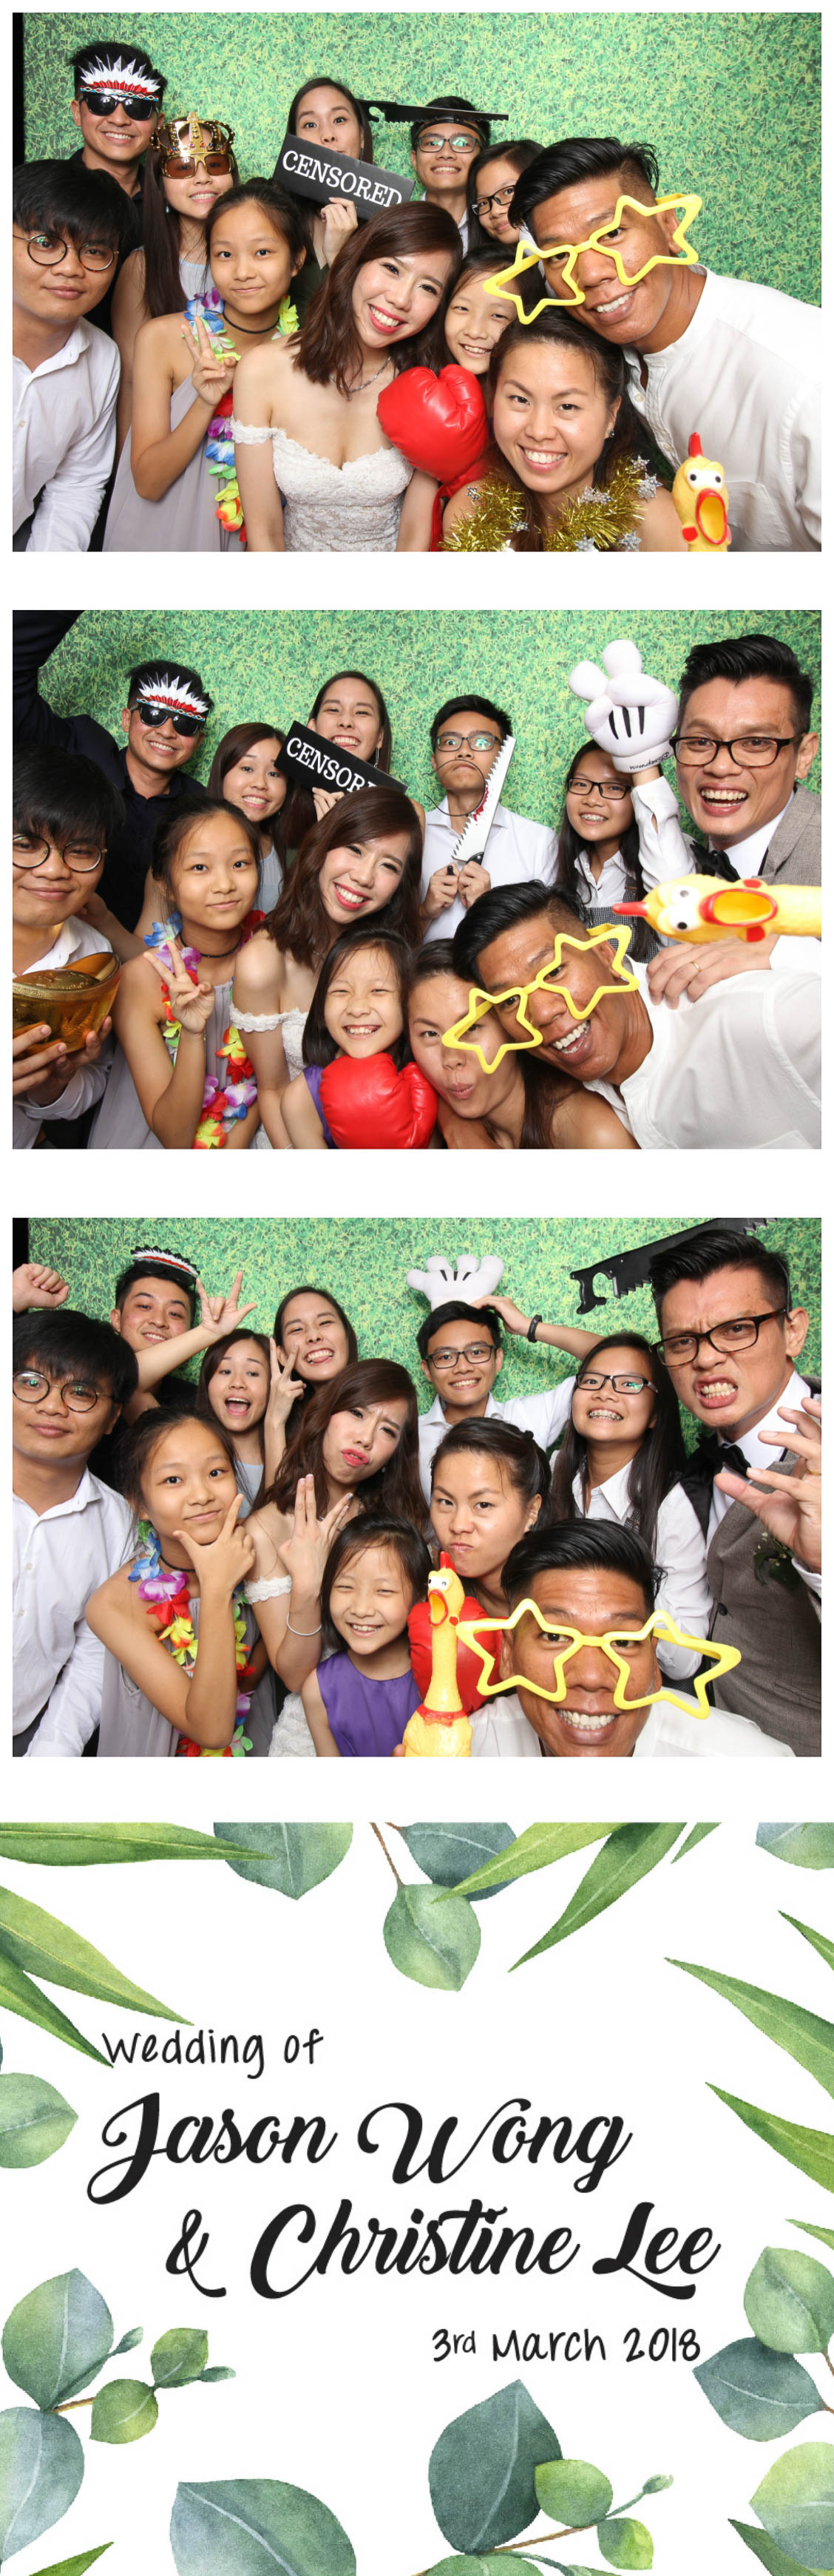 Photobooth 0302-50